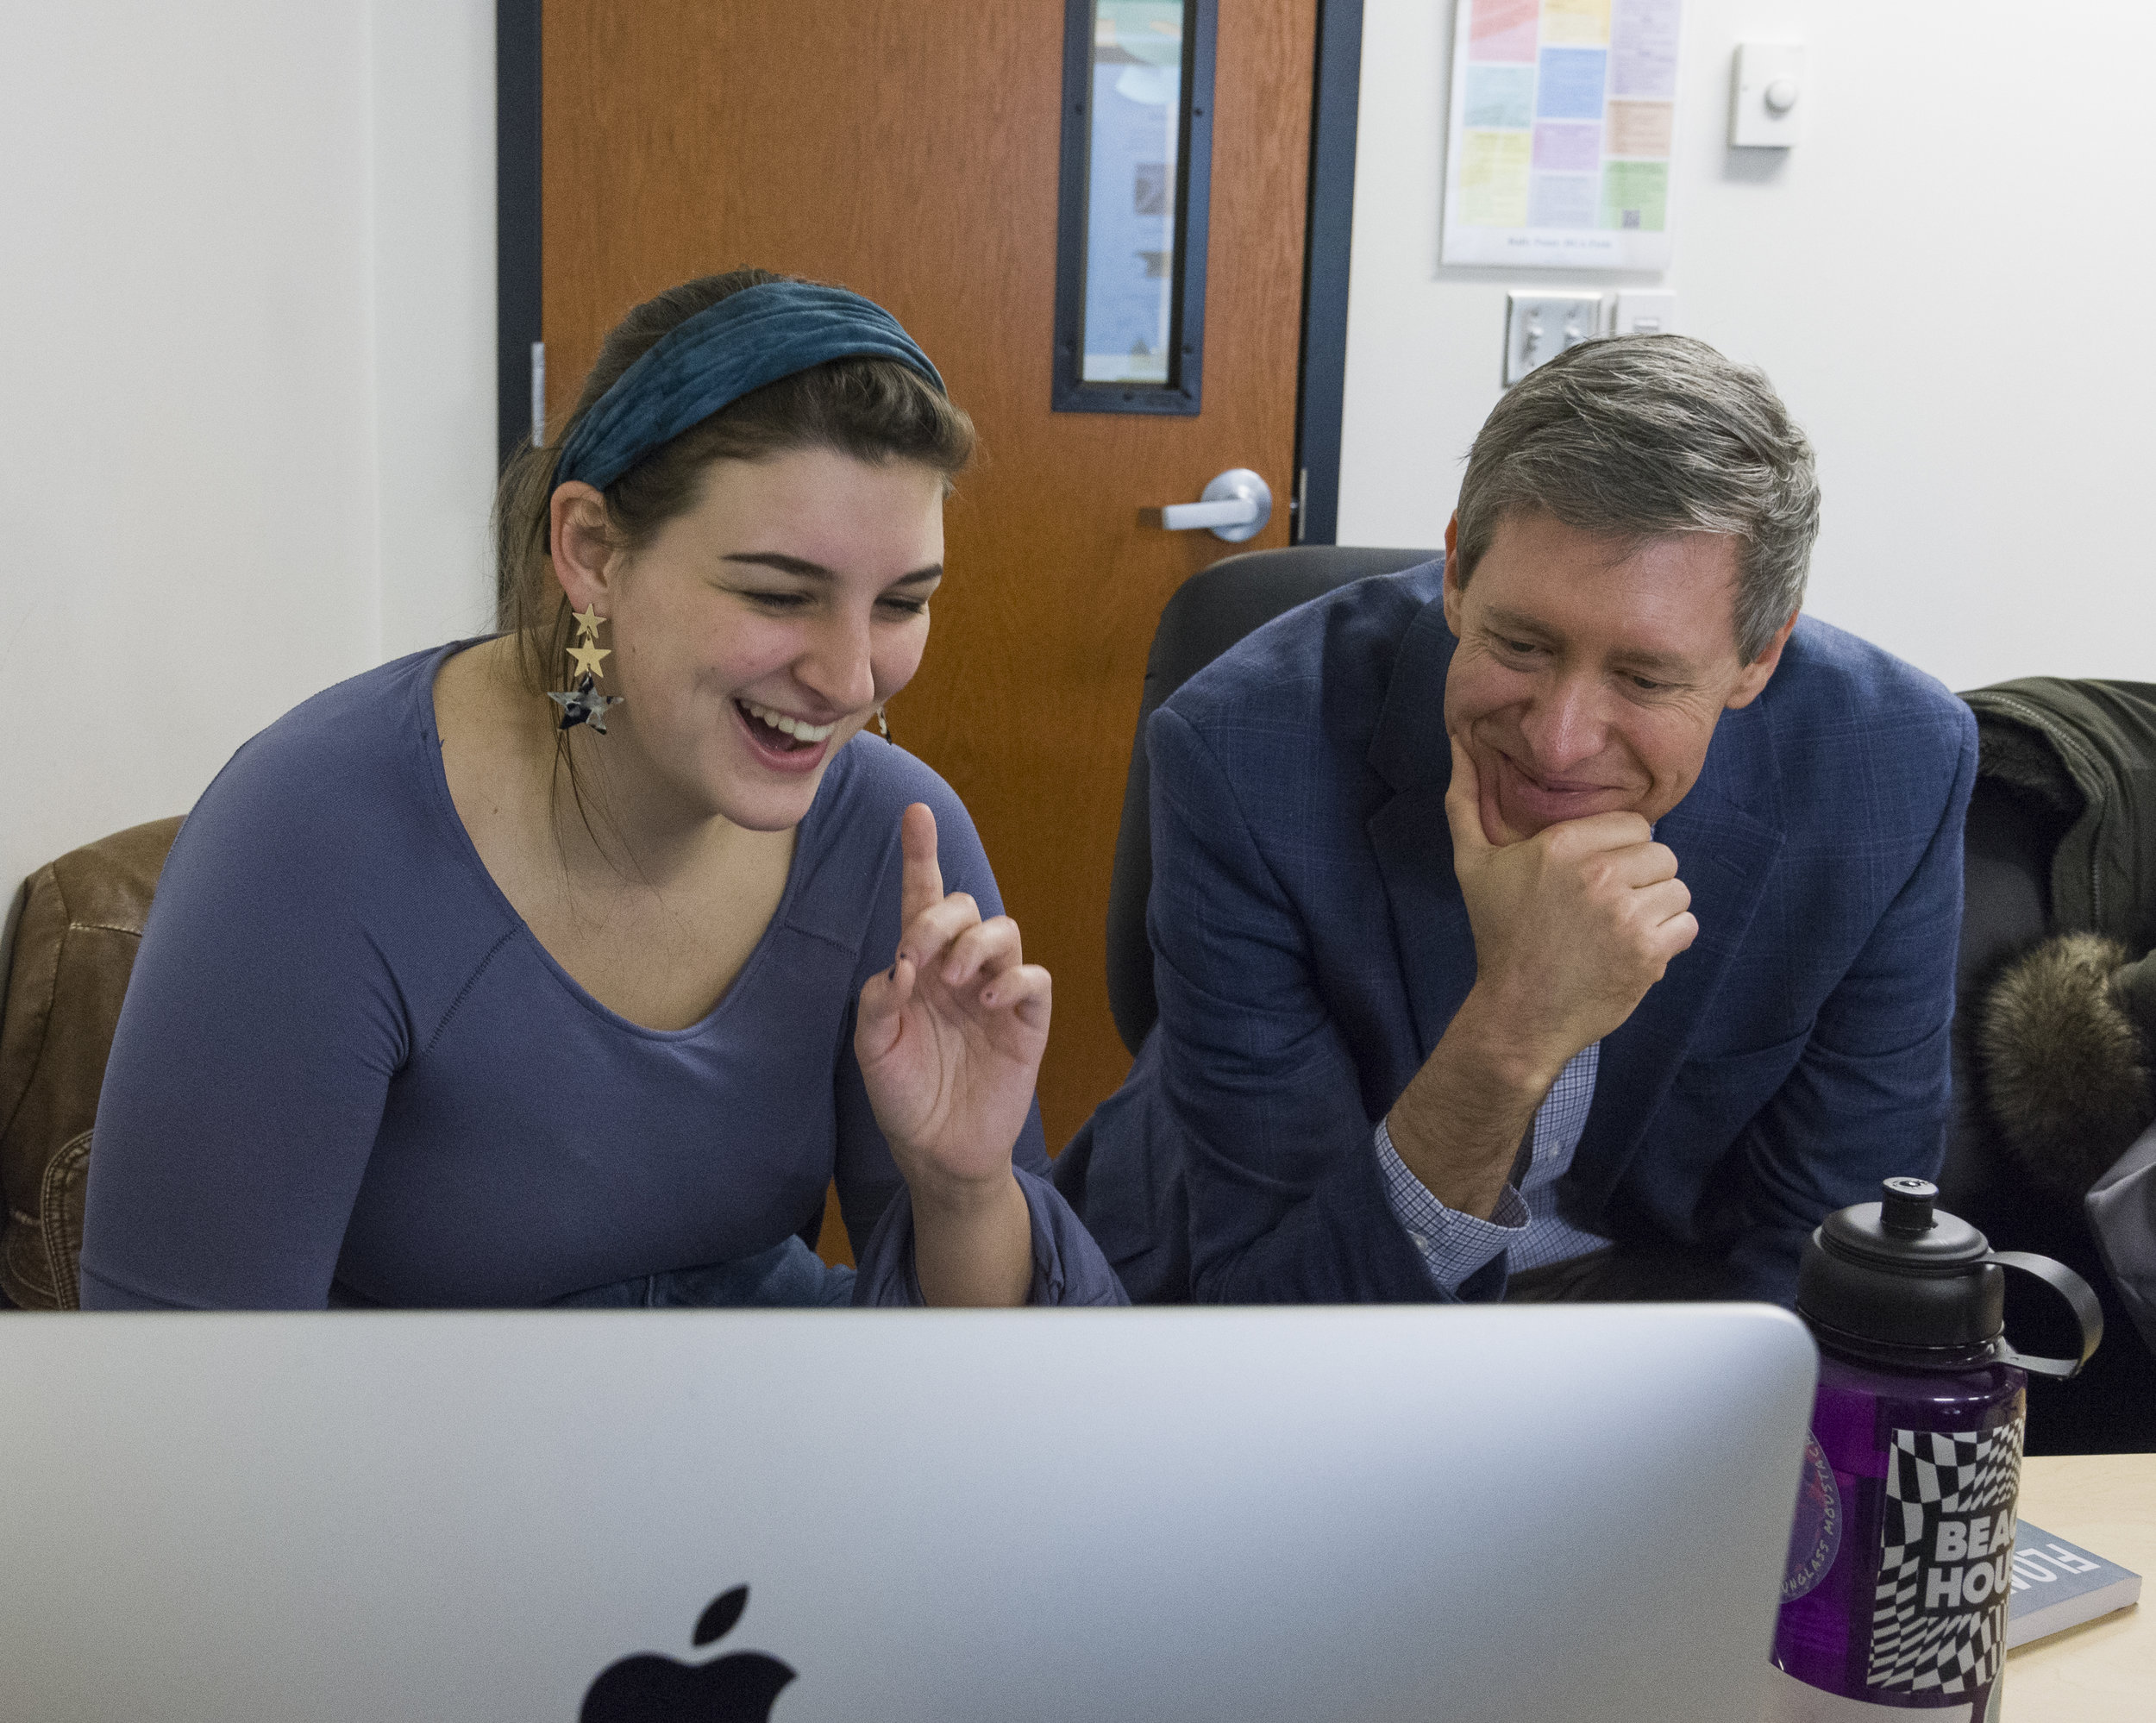 Kevin Atticks, Ph.D., director of the Apprentice House, with a Loyola student (photo by Loyola University Maryland)